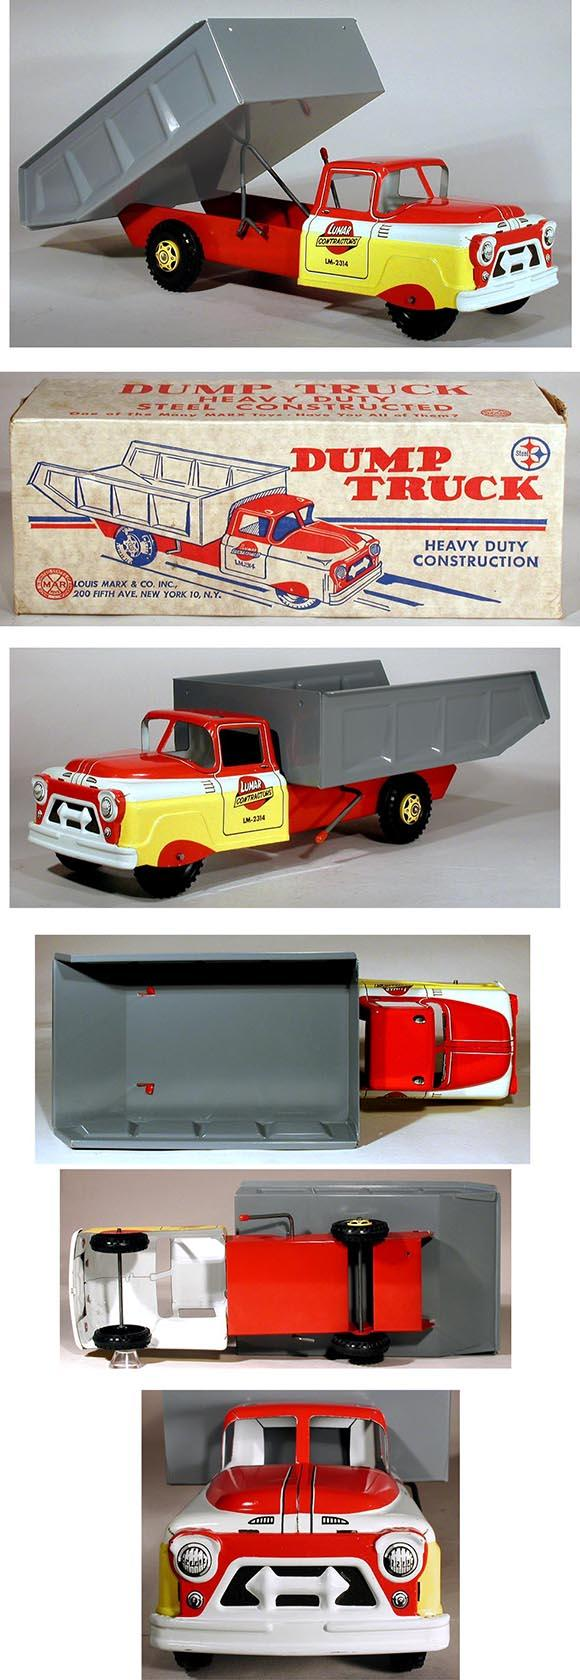 1964 Marx, Heavy Duty Lumar Contractors Dump Truck in Original Box